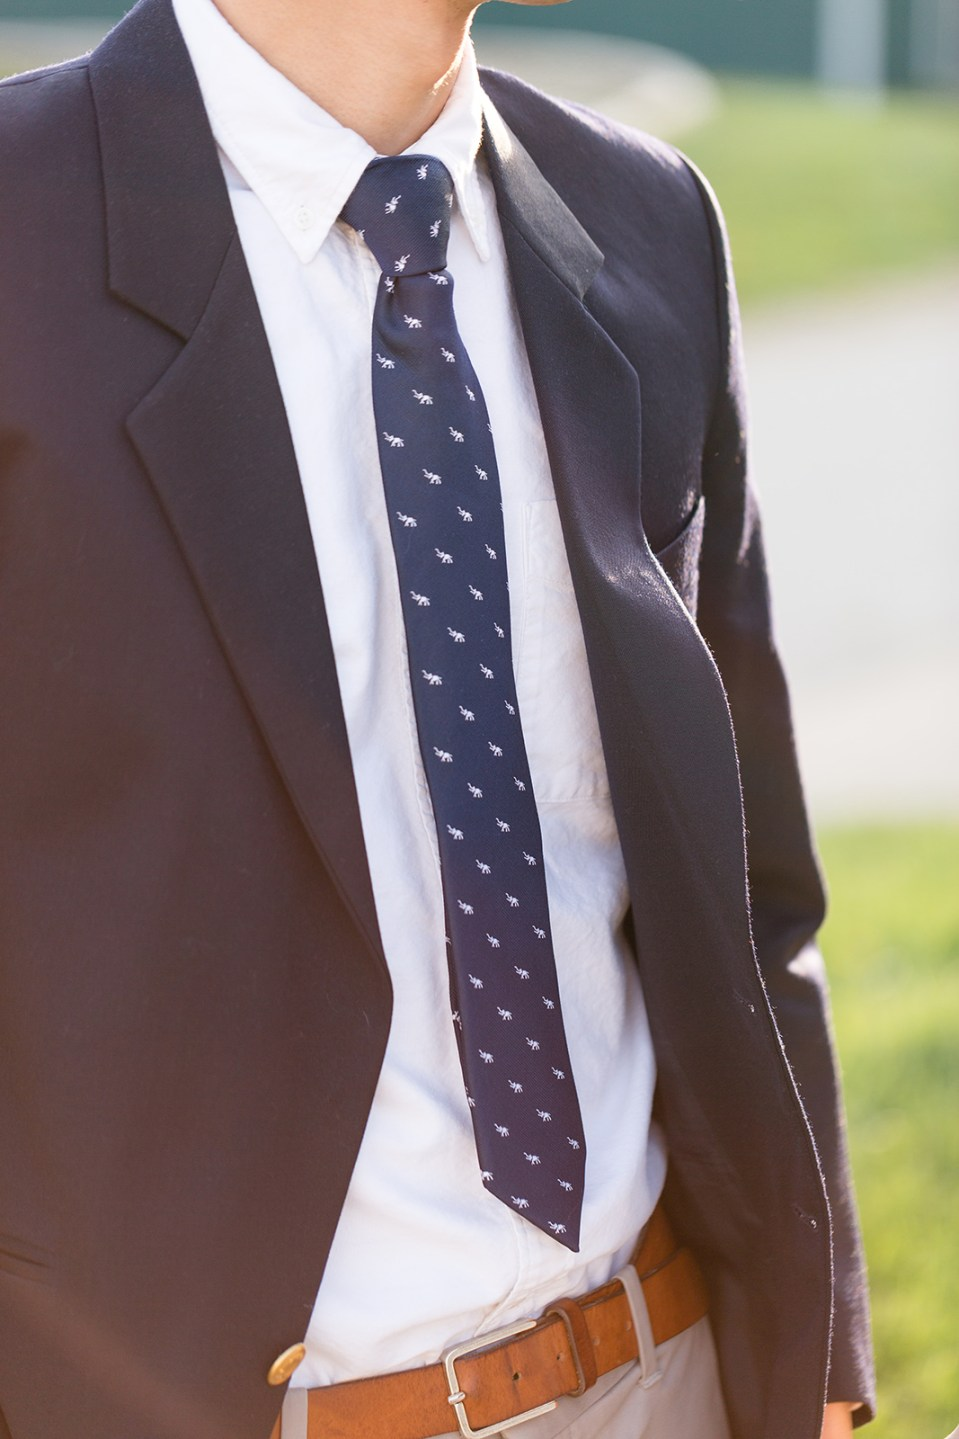 closeup of man's navy blue tie with white whales on it